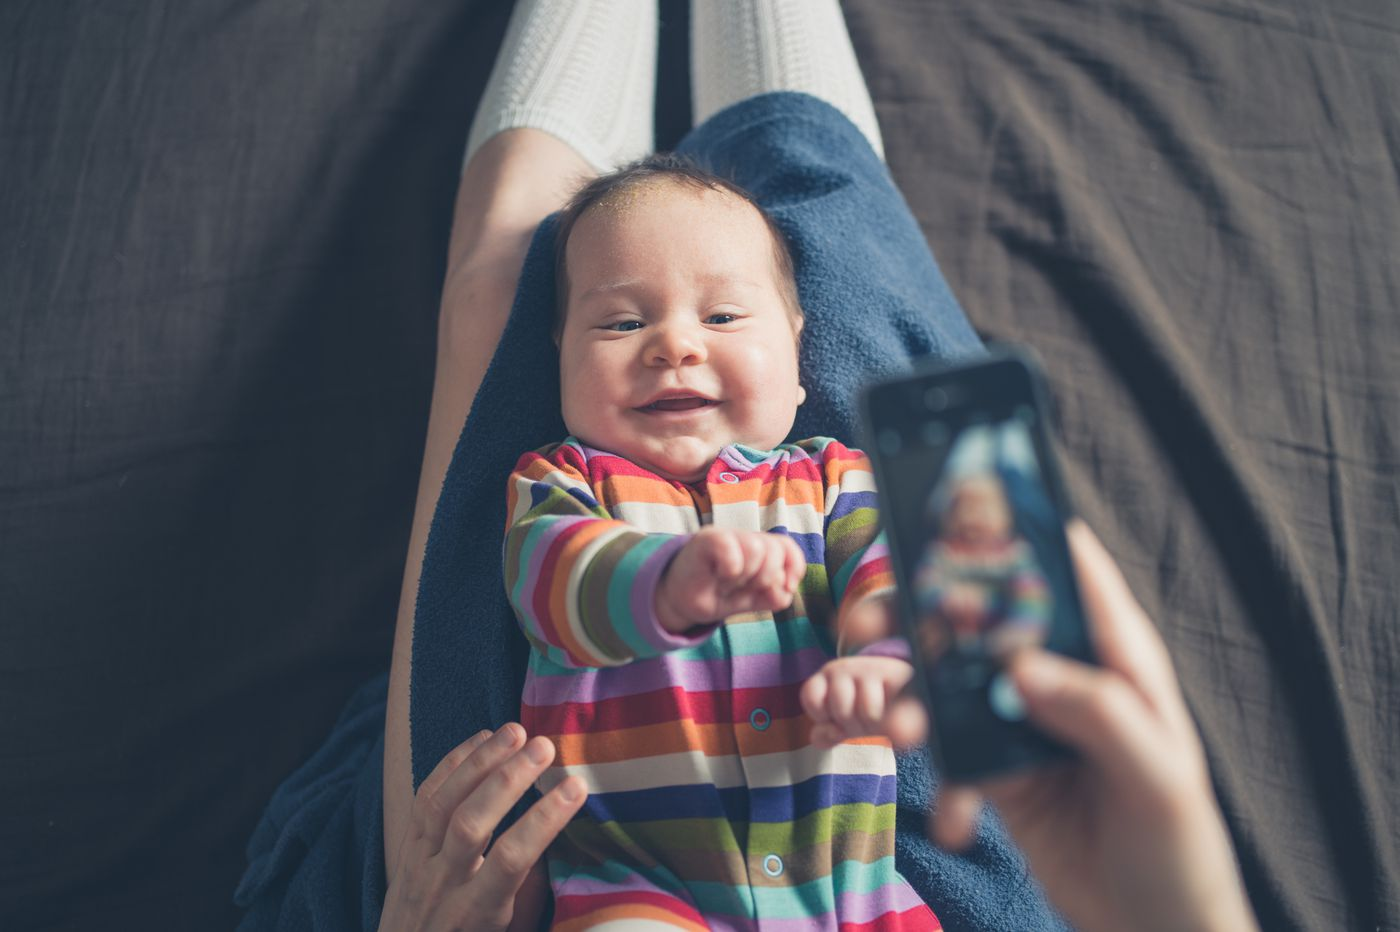 Sharenting: How much is too much when it comes to putting your kids on social media?